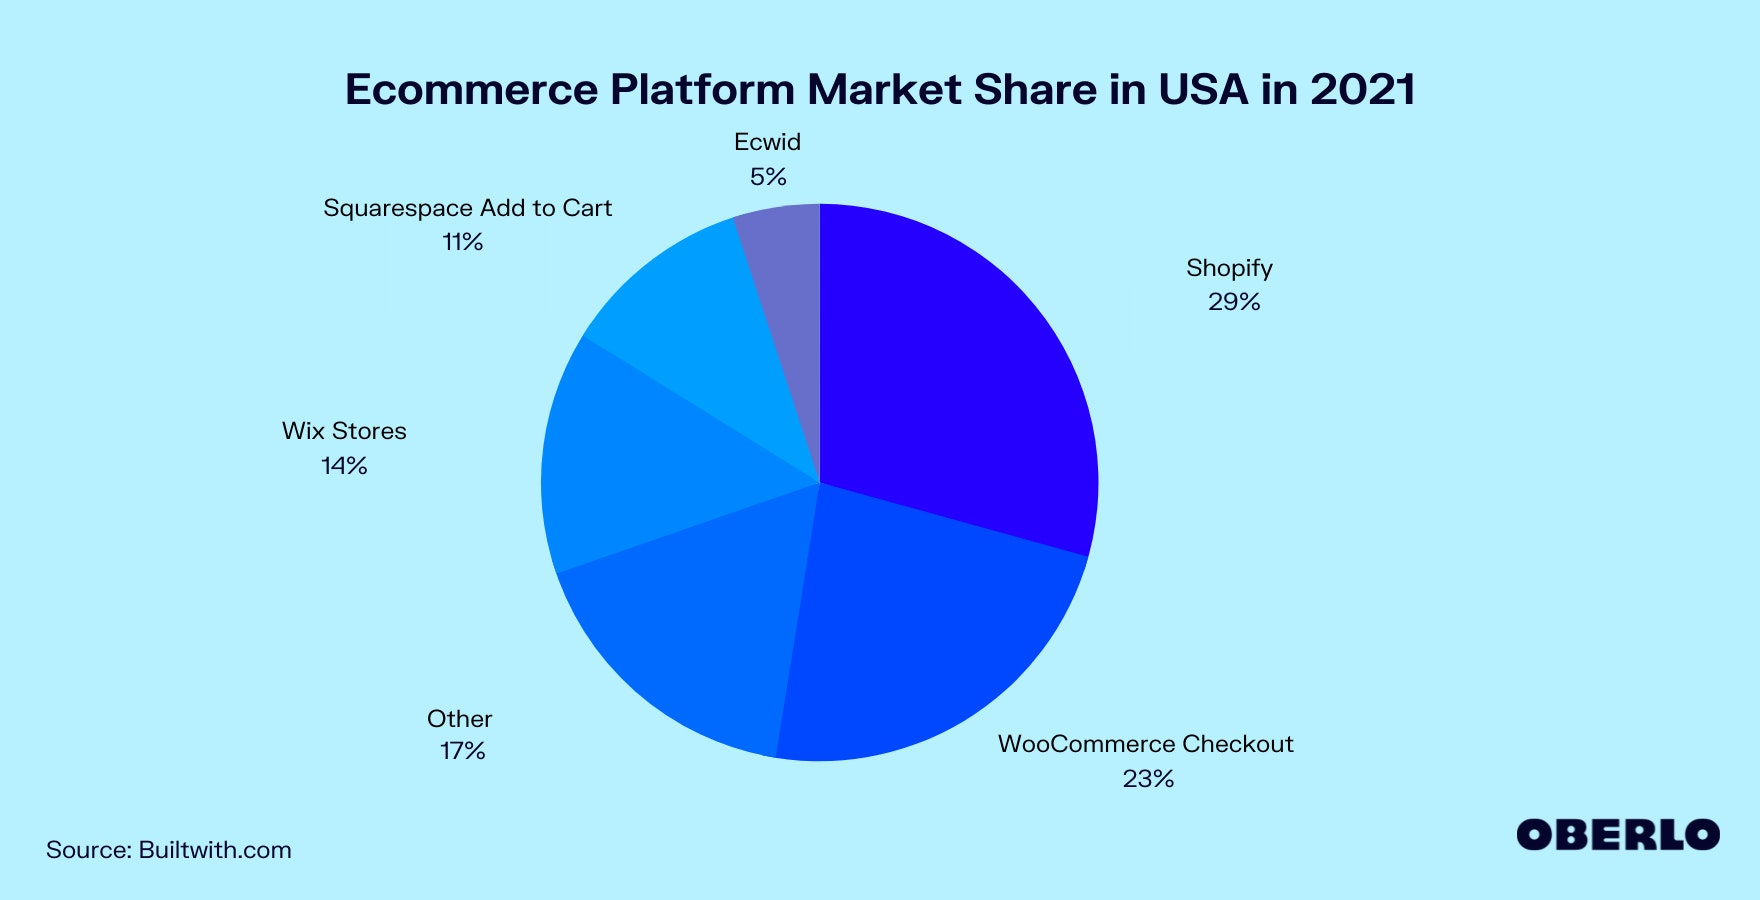 Chart of Ecommerce Platform Market Share in USA in 2021